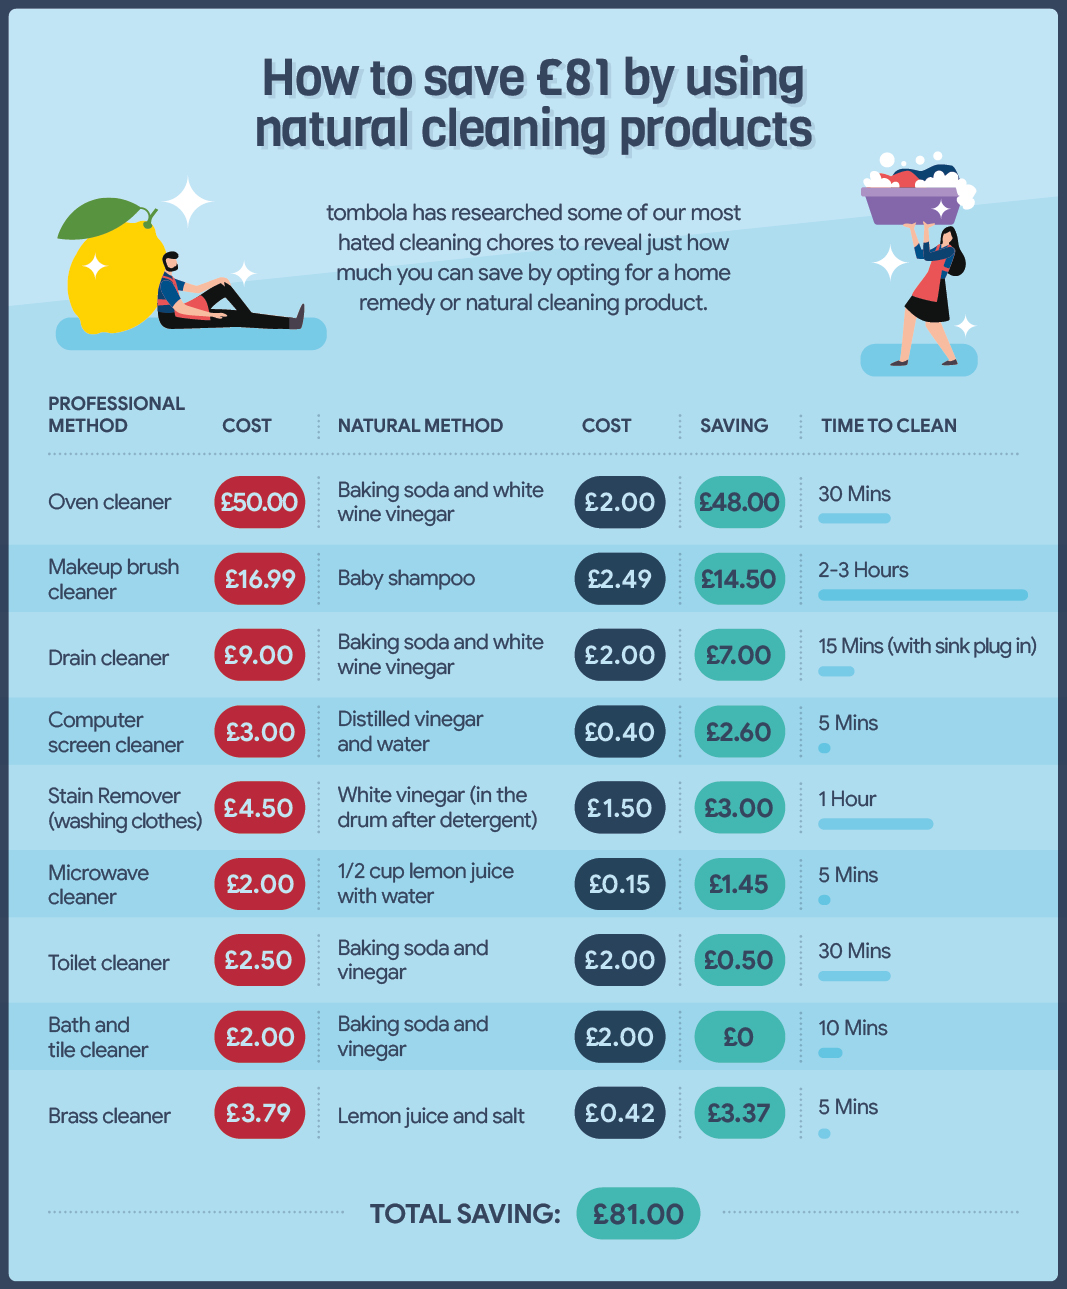 natural cleaning can save you money